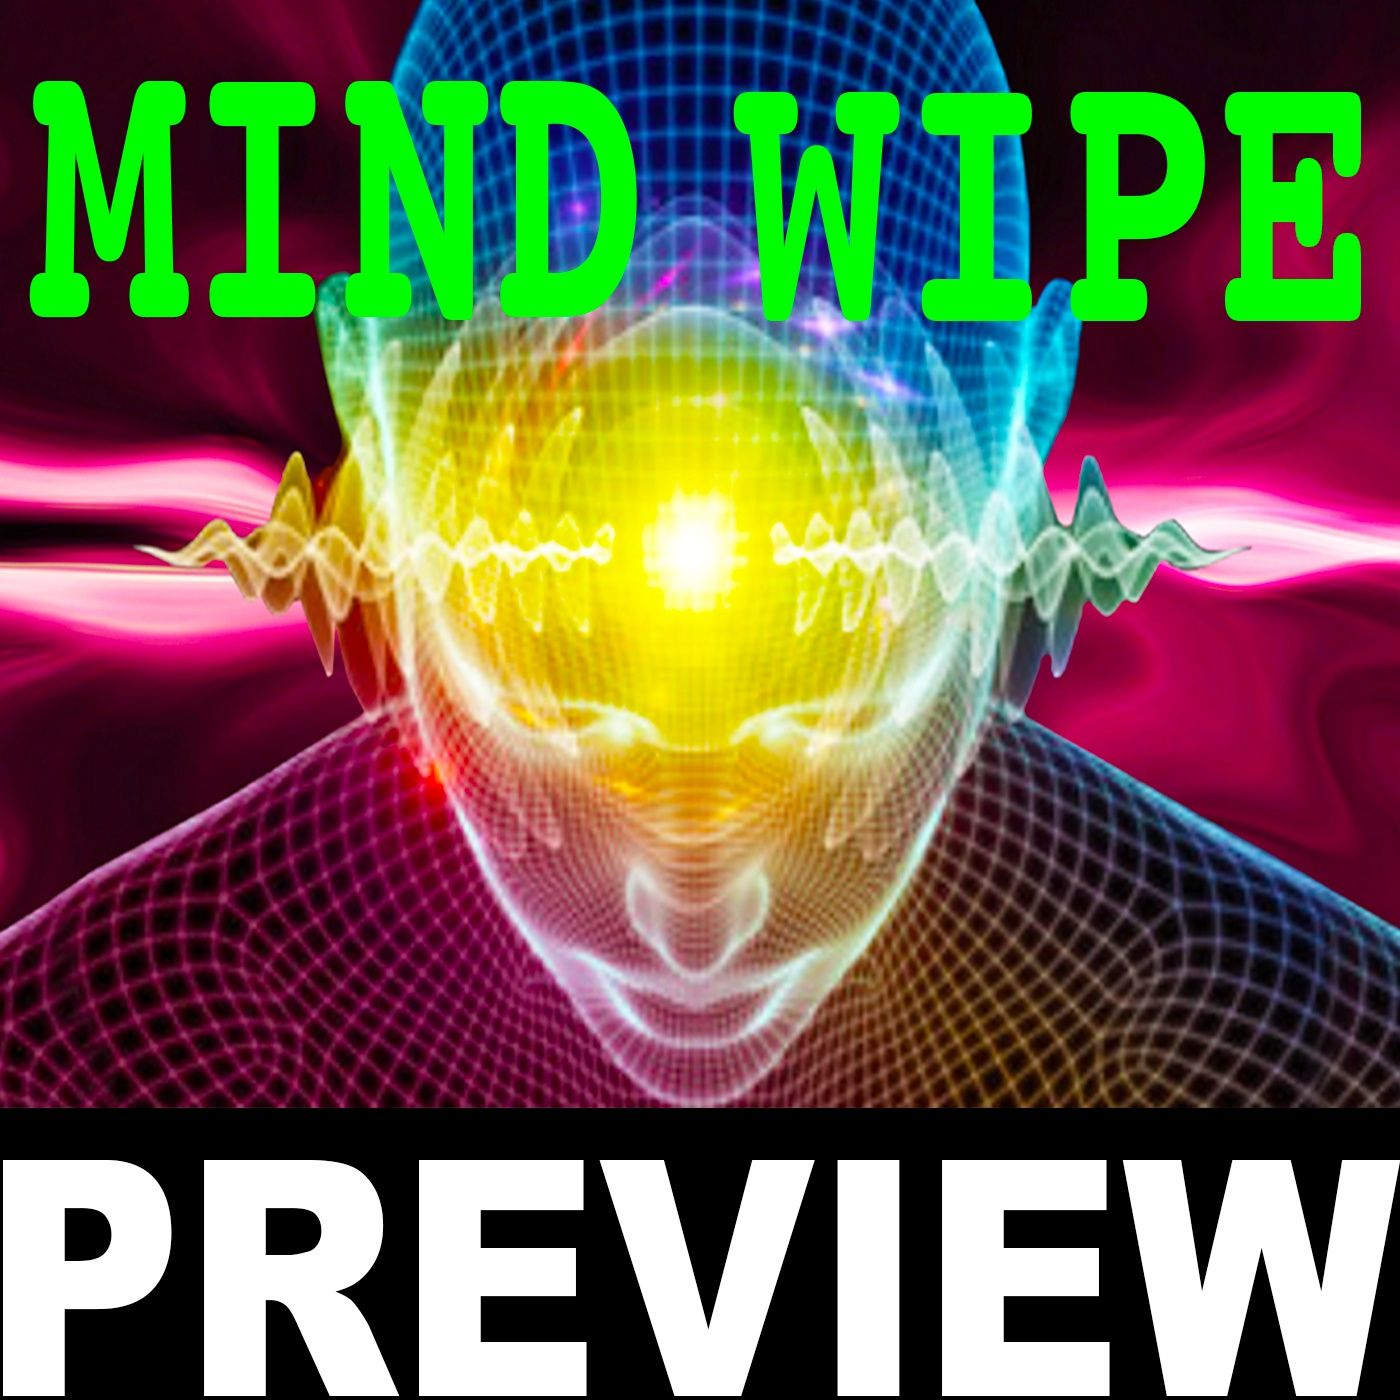 Science to Wipe The Mind - Dream Come True or Nightmare? (PREVIEW)